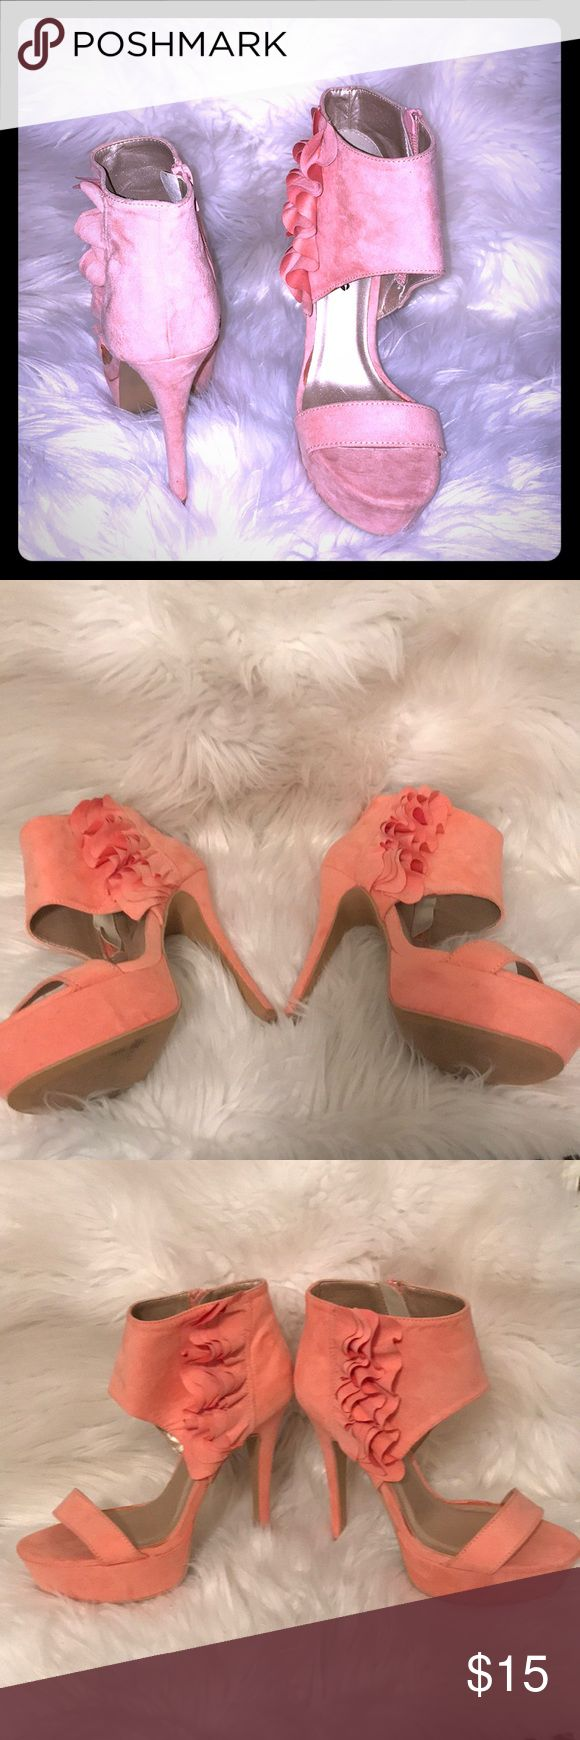 """Body Central Peach Hot Heels 👠 NWOT.. Never Worn. Perfect with any summer outfit. Size 7 H H 5"""" Body Central Shoes Heels"""